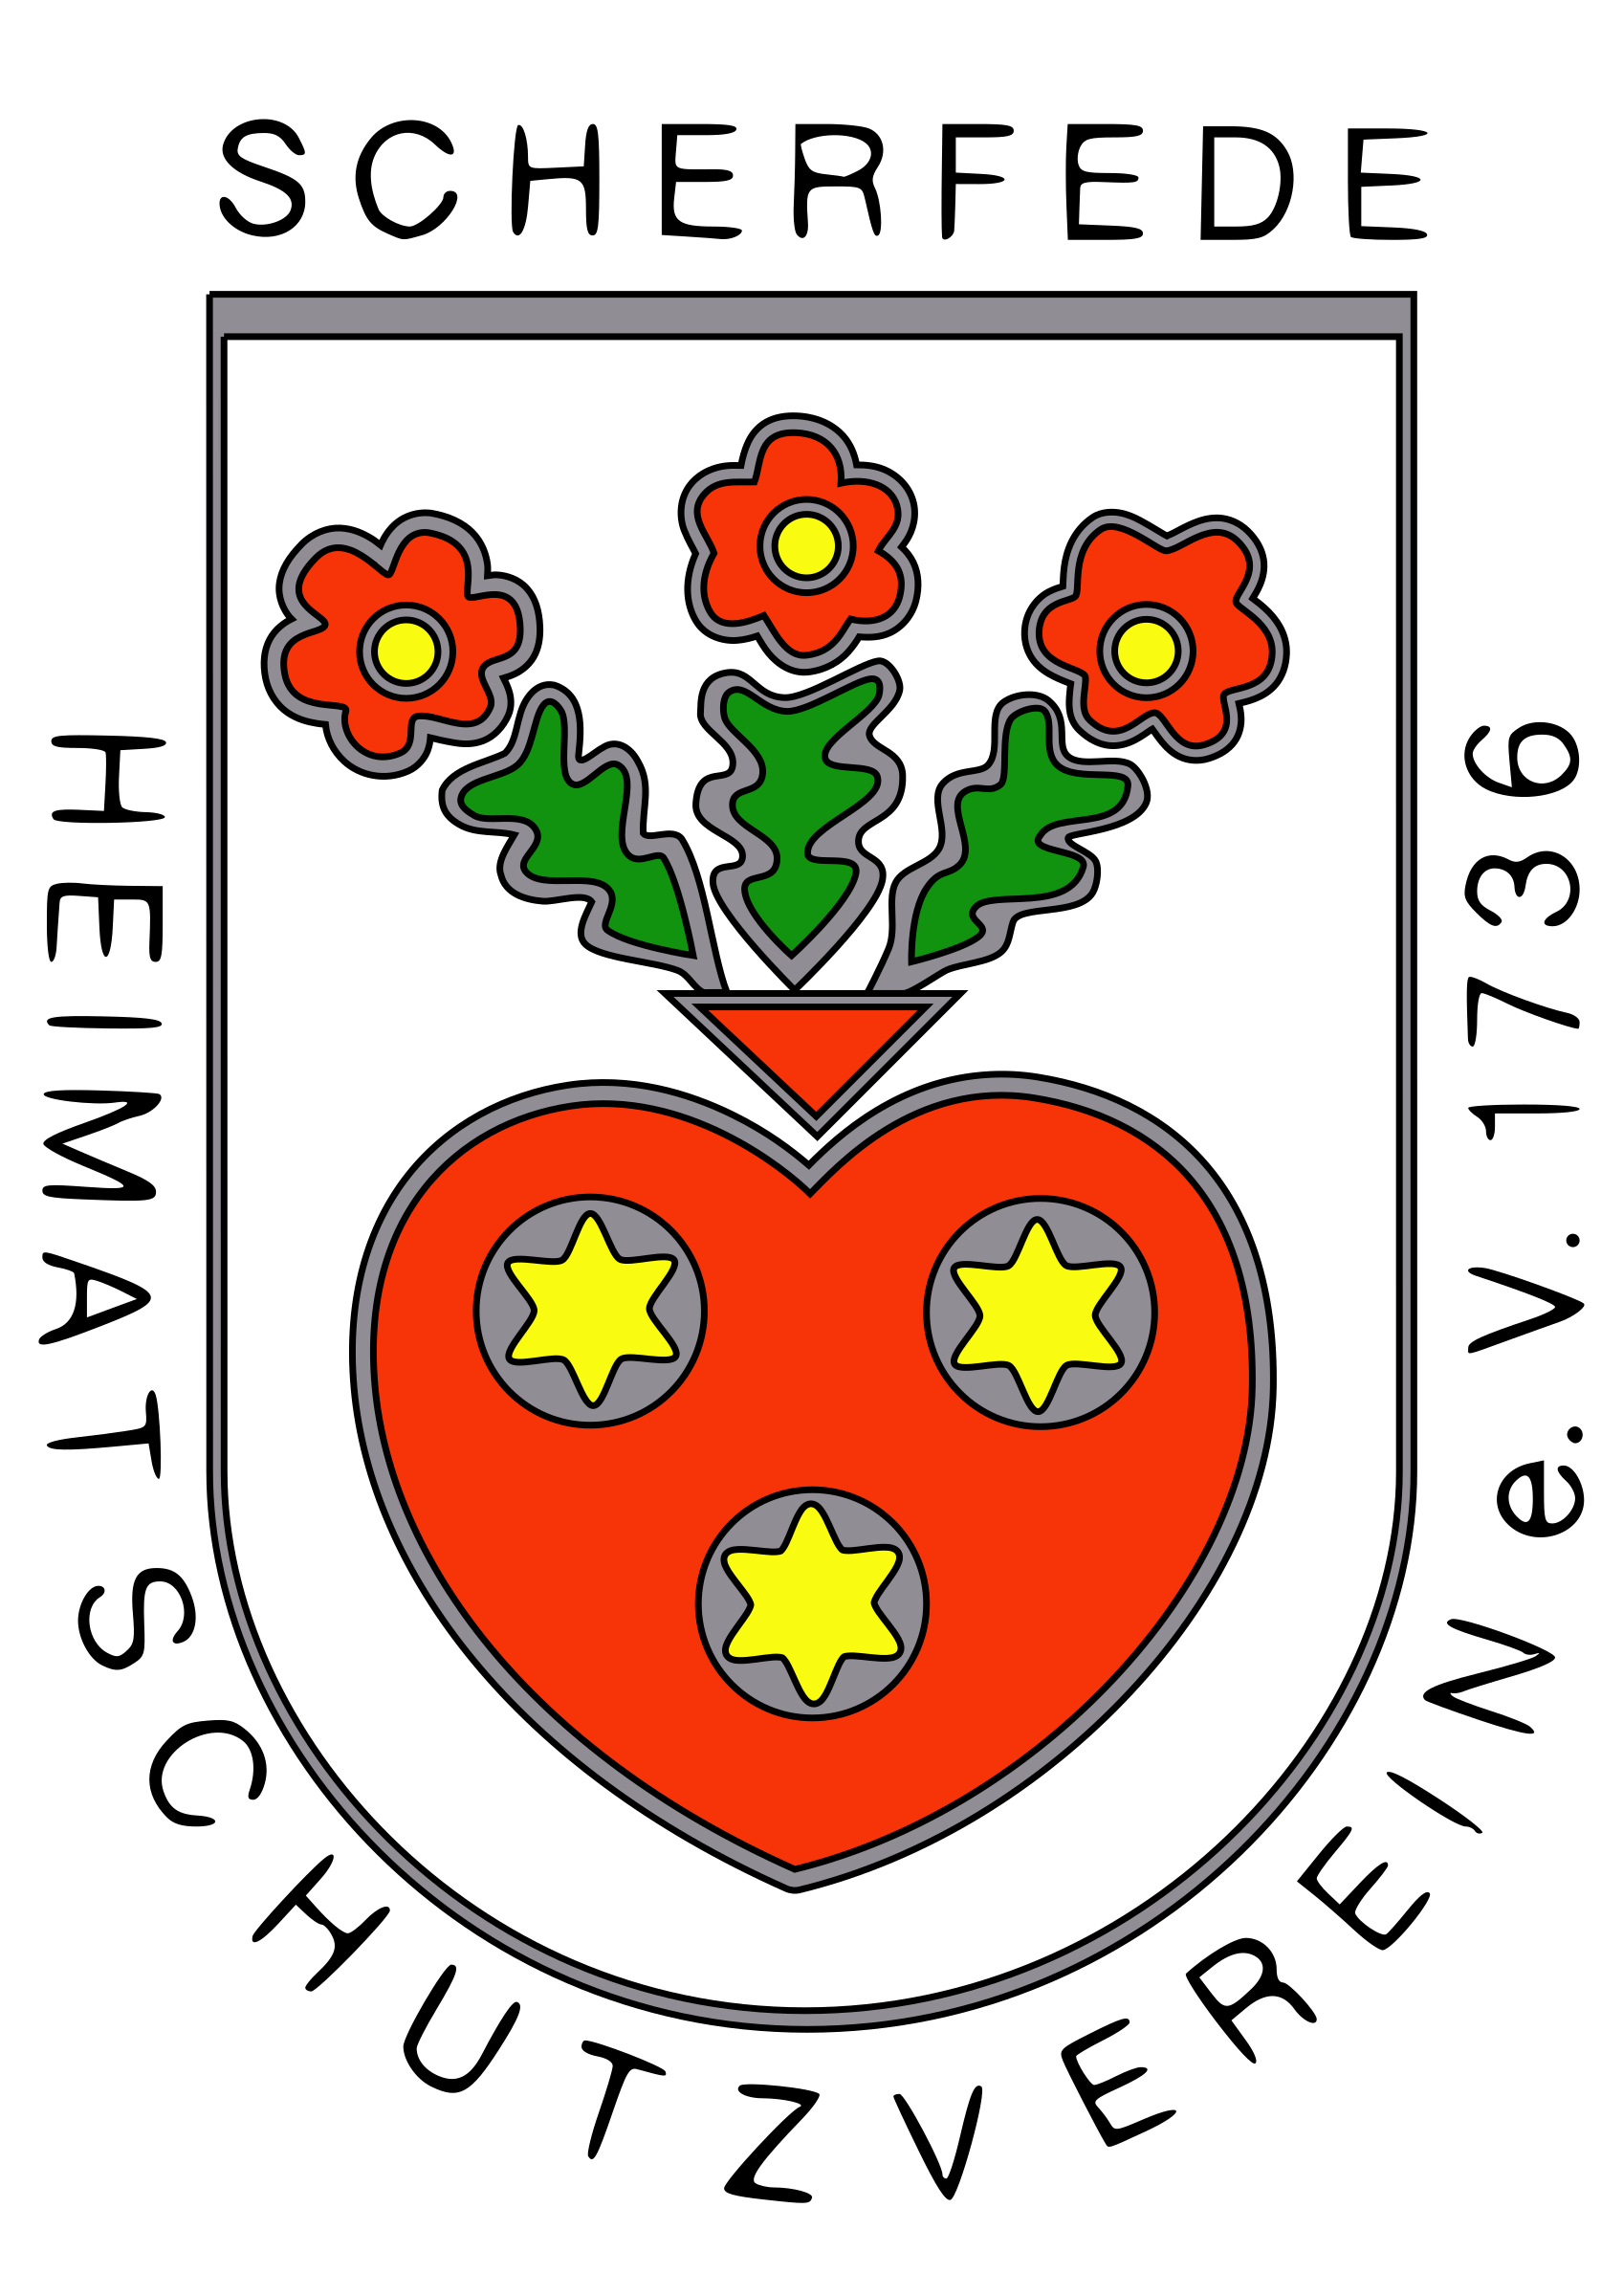 HSV Coat of Arms by erlandh